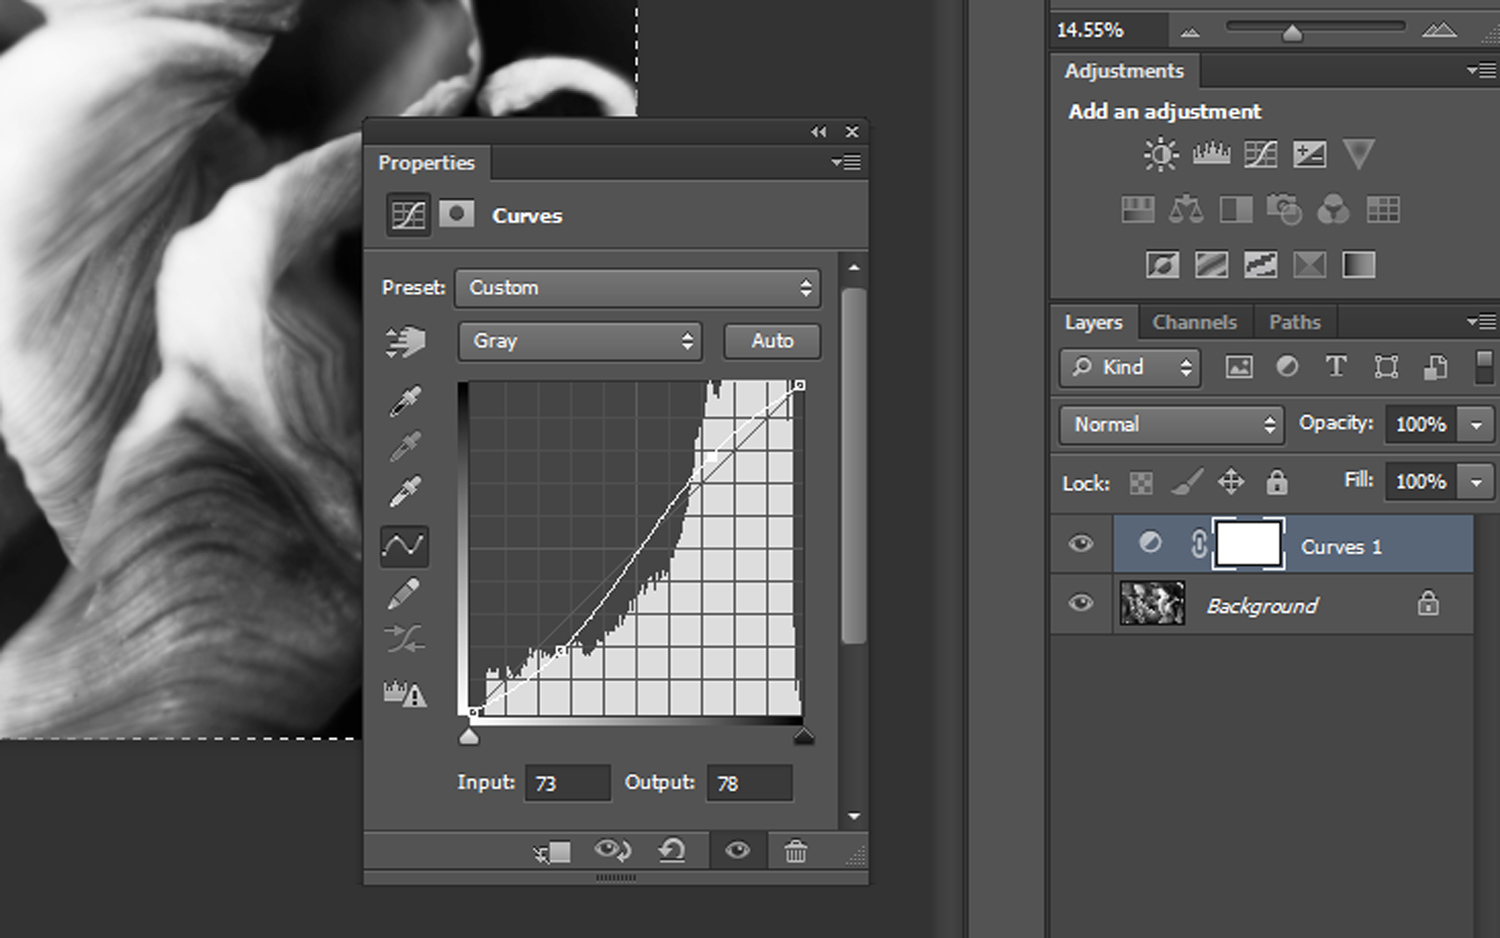 5 - How to Duotone a Photograph in Photoshop